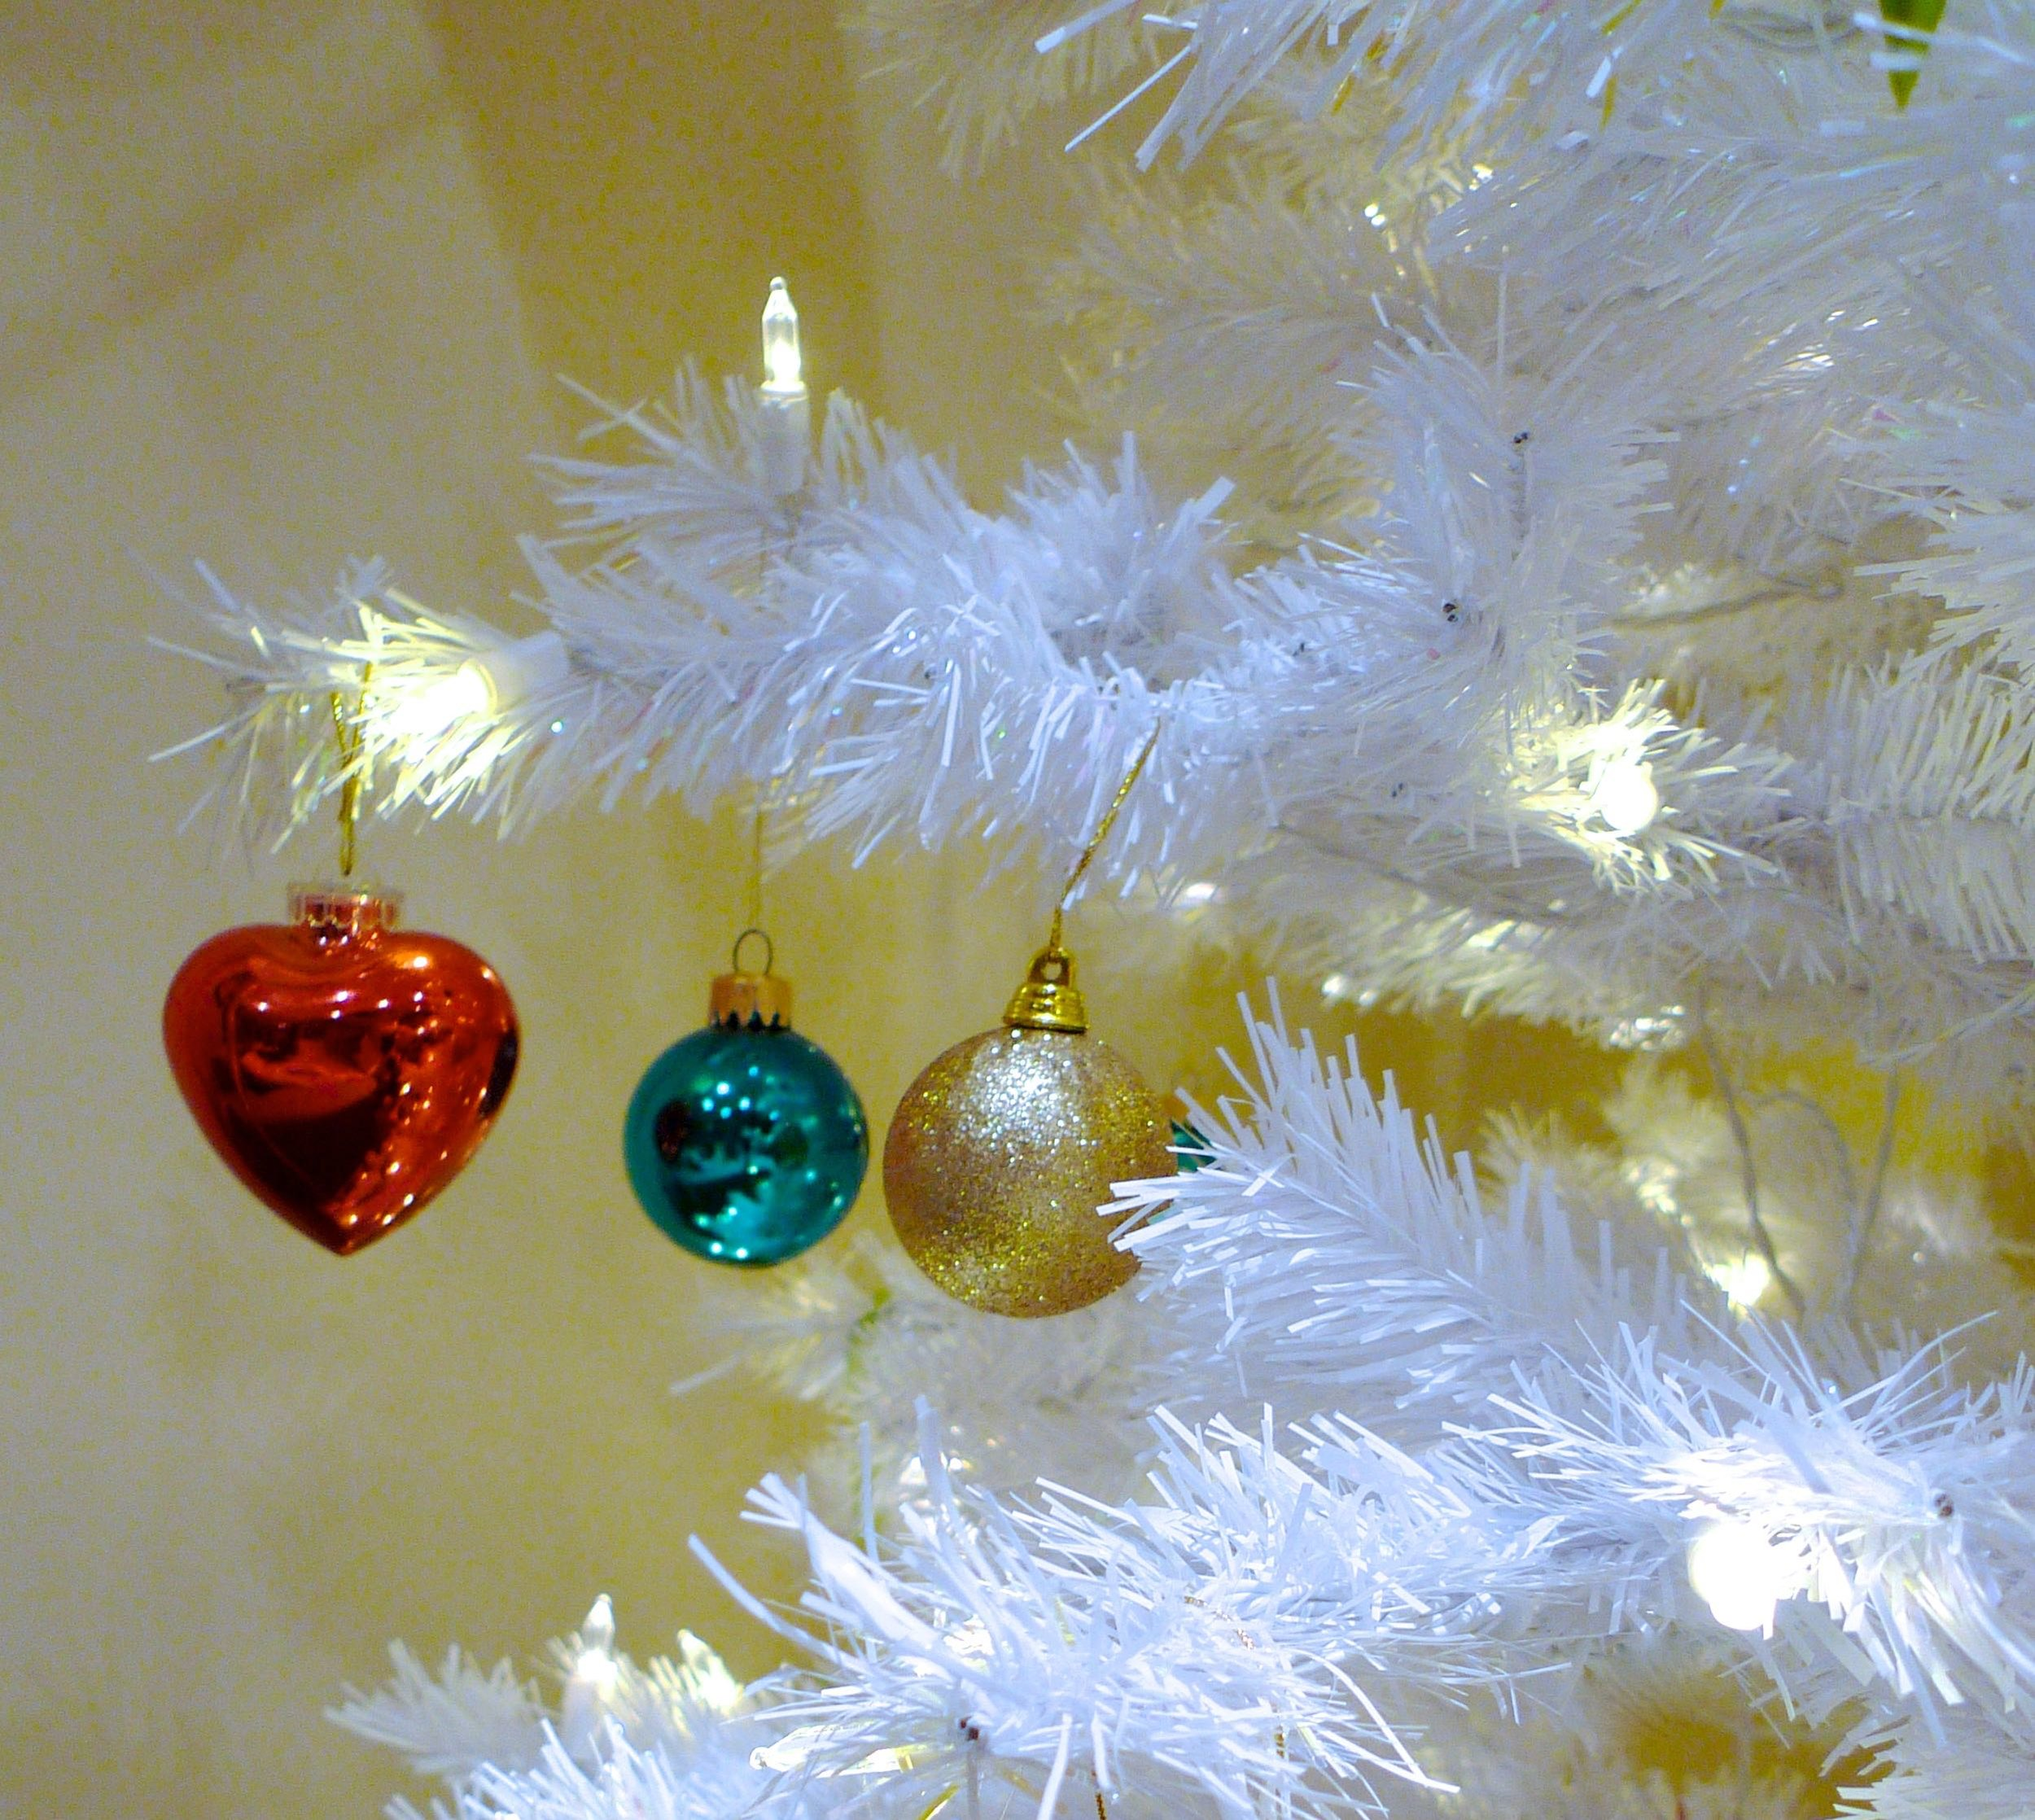 sturdy branches holding a multitude of baubles